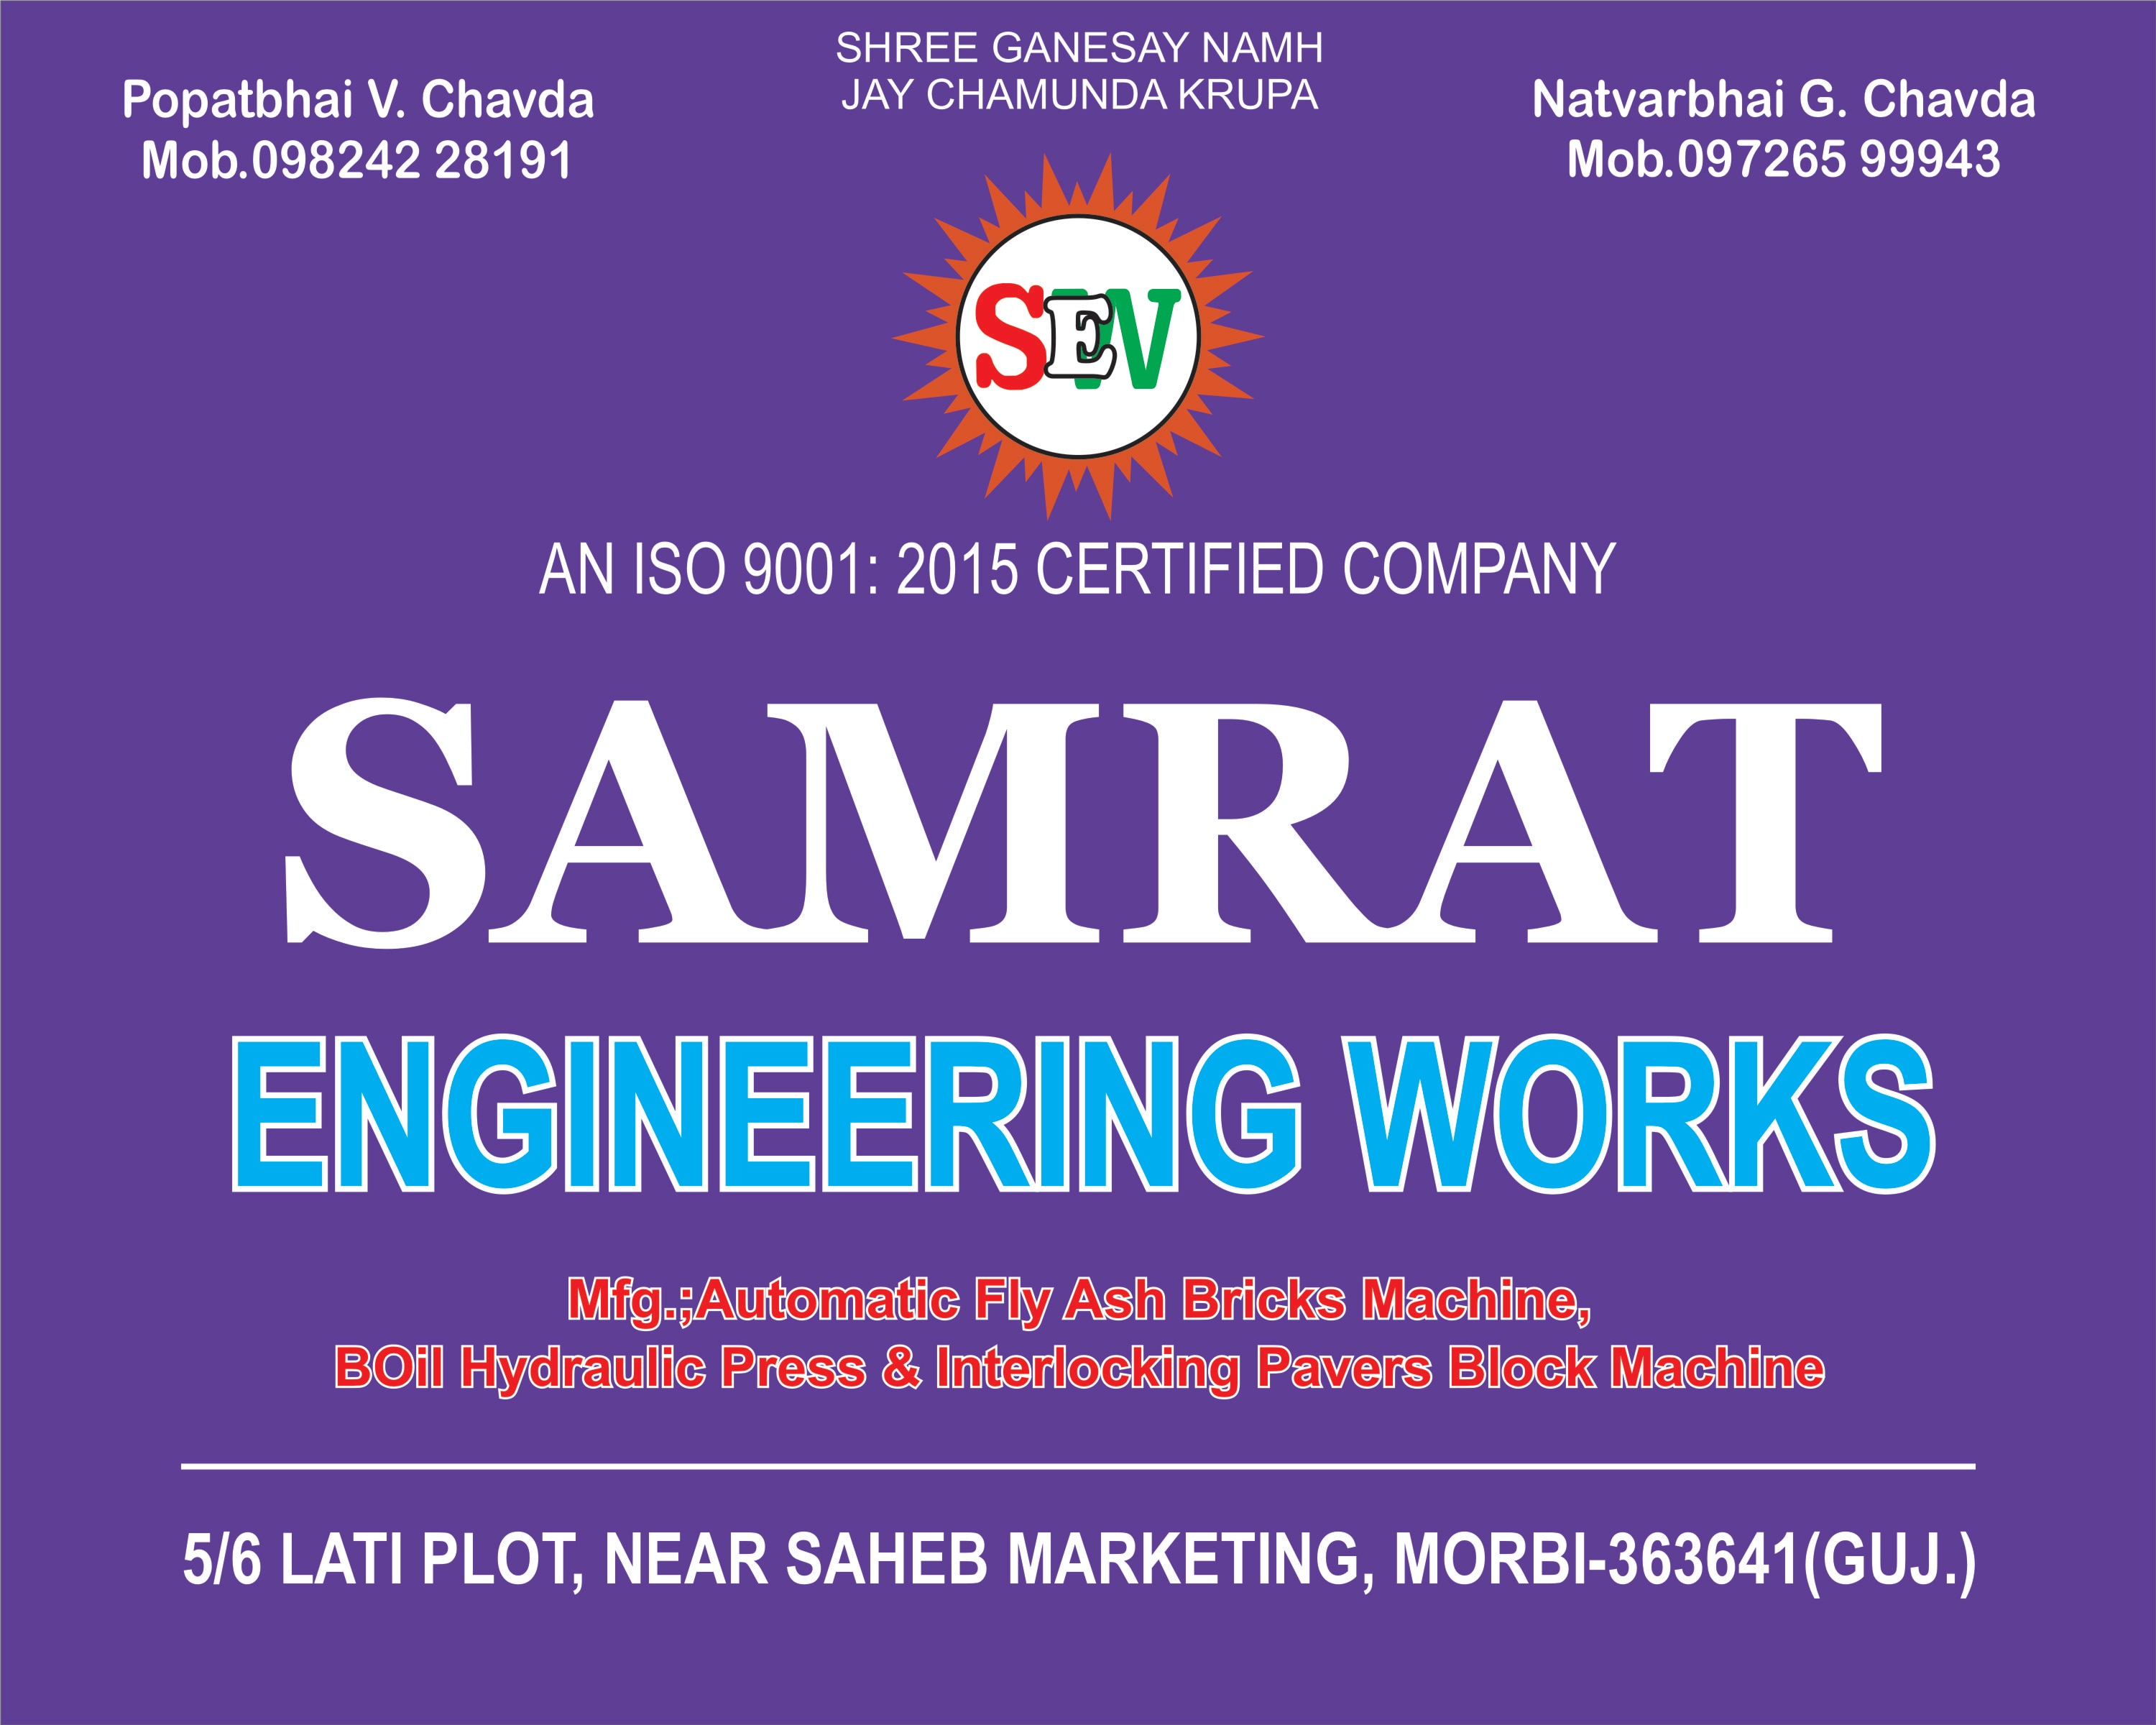 we are manufacturer fly ash brick making machine in morbi gujarat. this machine is only good spare parts and  good thing using so that his coustmer is no complain.and the company owner solve this machine any problems and service. company in other machine manufacturer like wise paver block making machine, pan mixer machine, vibretore plants, fully automatic fly ash brick making machine, D mould machine, 40 ton paver block machine, 70 ton paver block machine, conveyor belt and other etc. machine machine manufacturer in samrat engineering works morbi.  this company  company owner  Mr. popat bhai v chavda   only dream like wise  indian country devlopment and made this indian best and good country.  indian is very good country in all world.